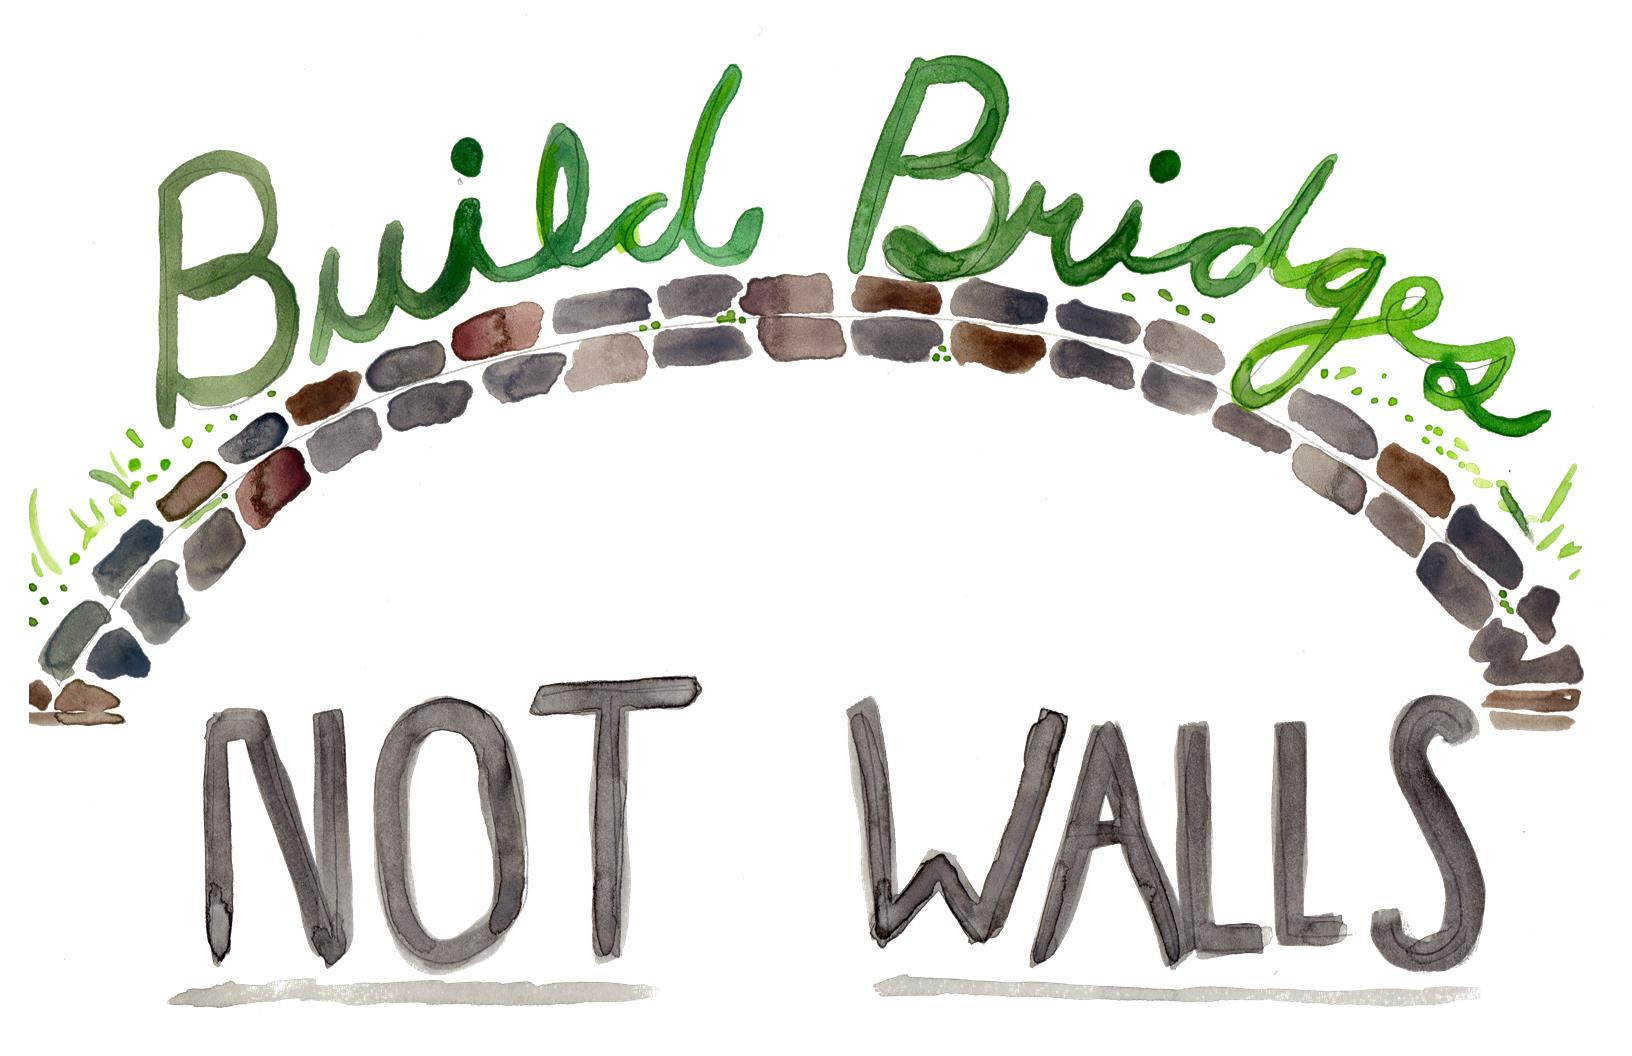 Build-bridges-not-walls